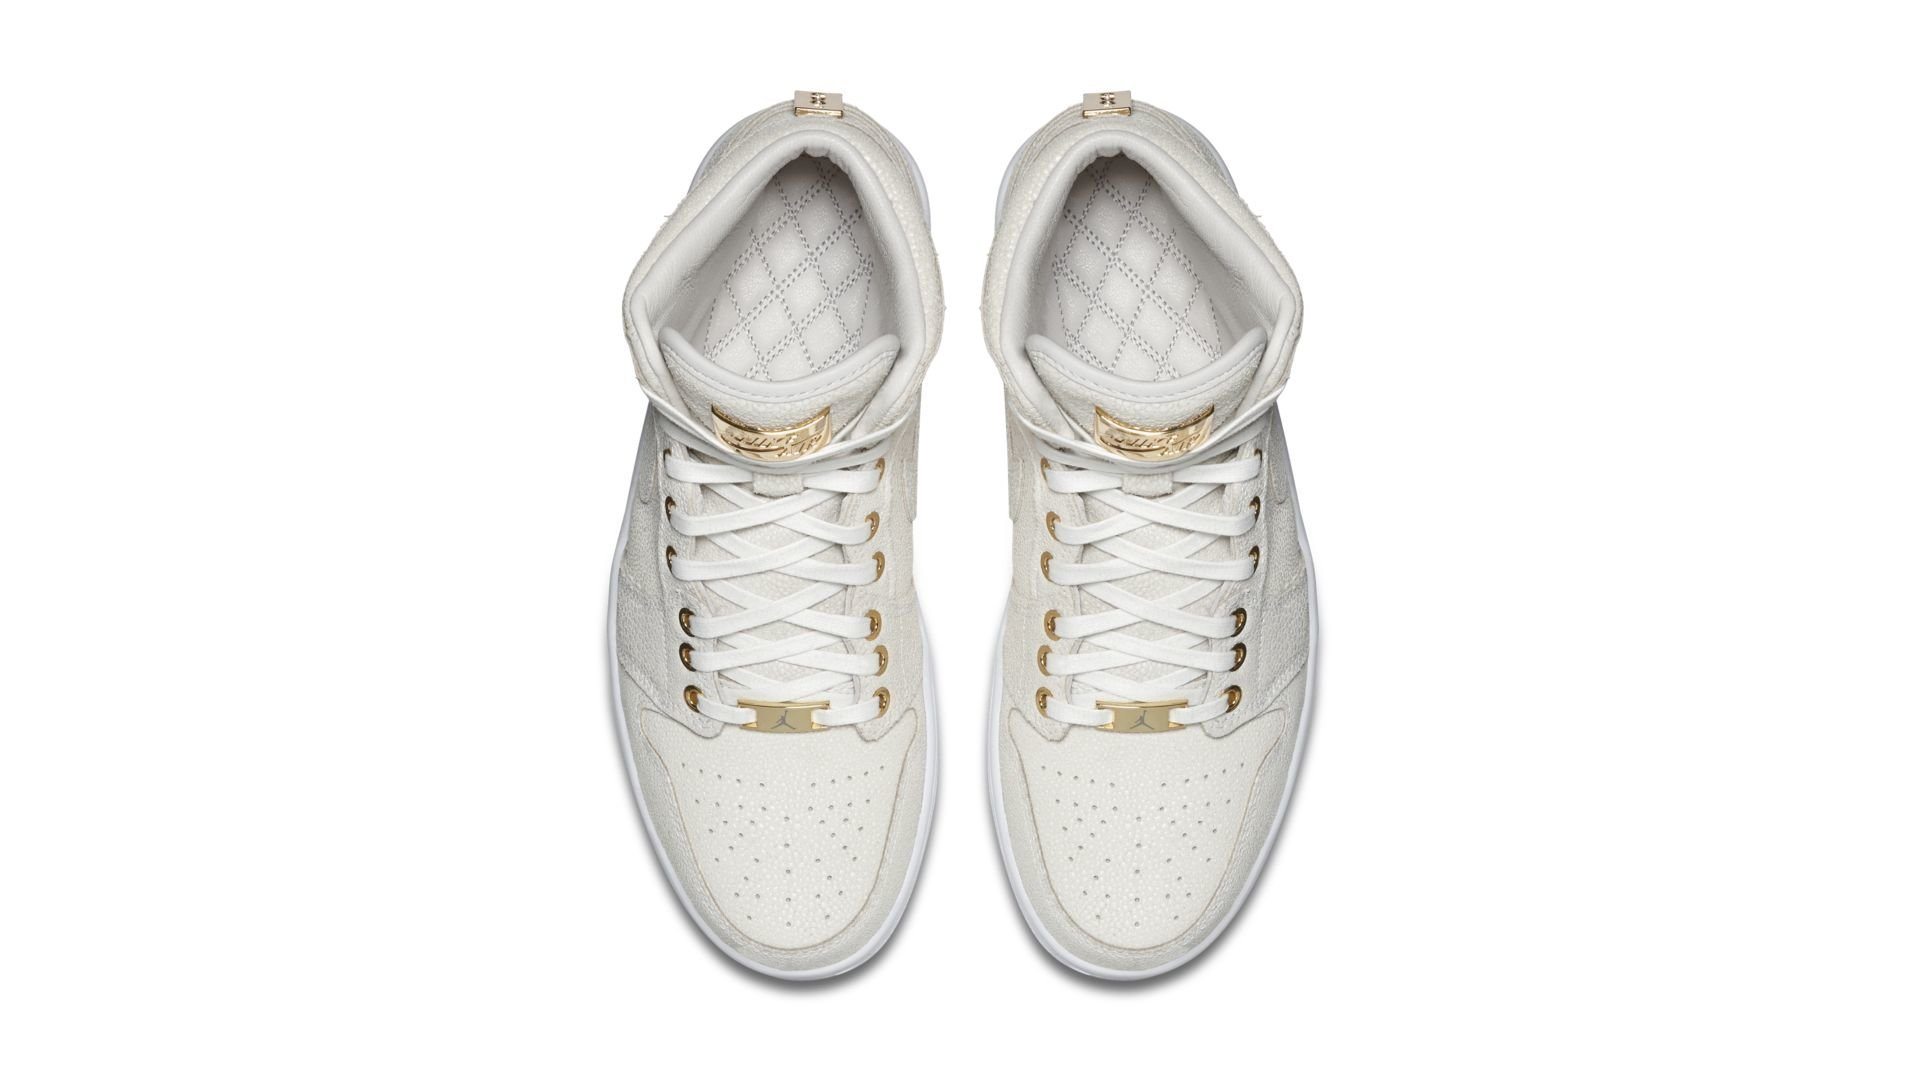 Jordan 1 Retro Pinnacle White (705075-130)